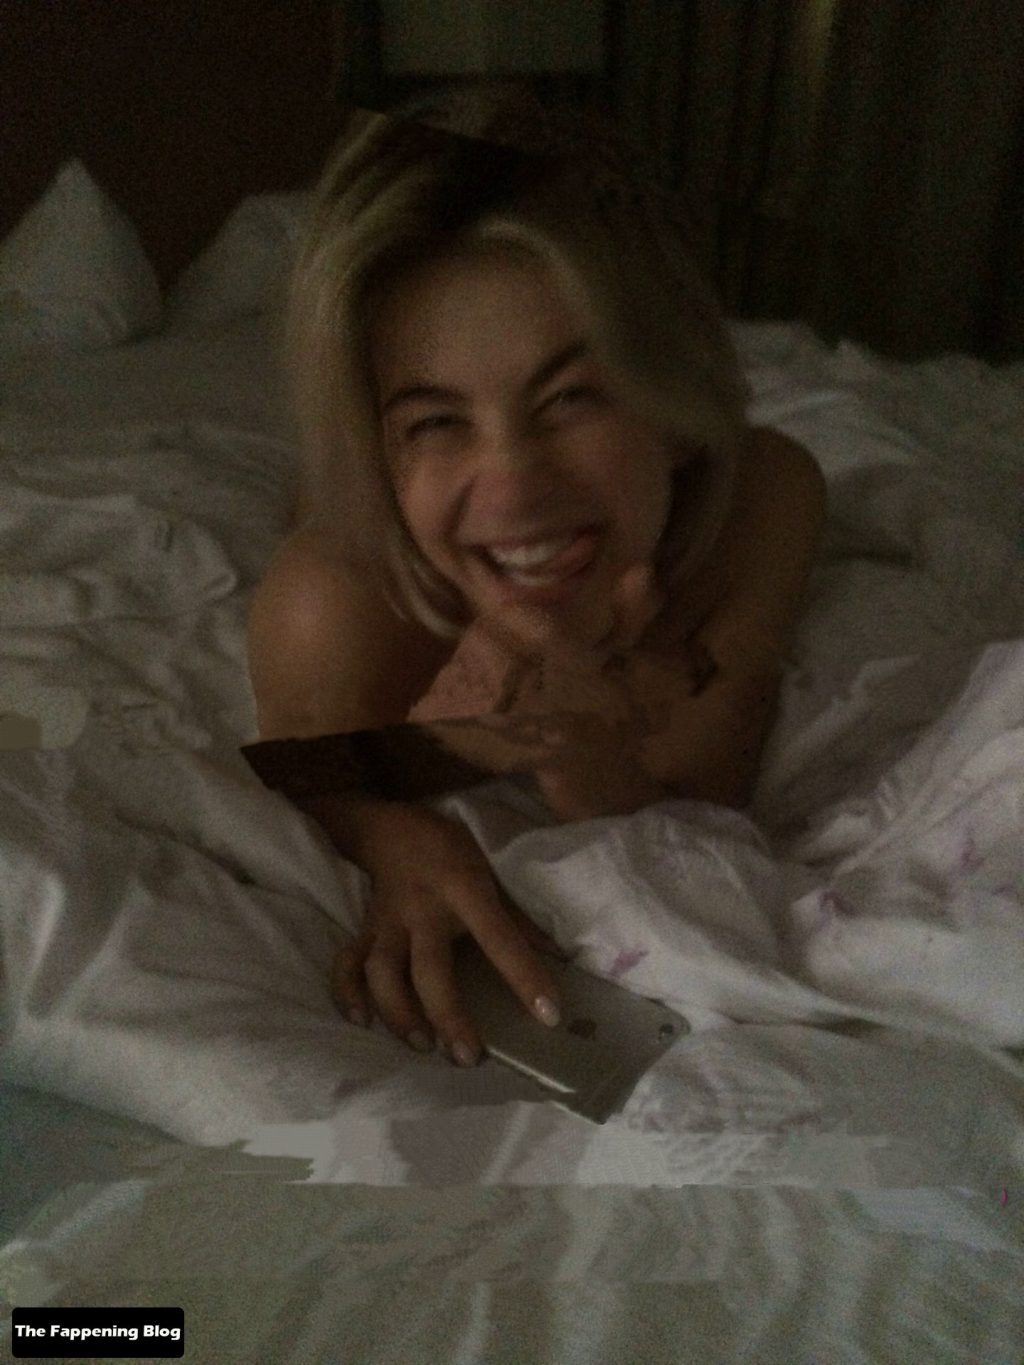 Julianne Hough Nude Leaked The Fappening (2 Preview Photos)